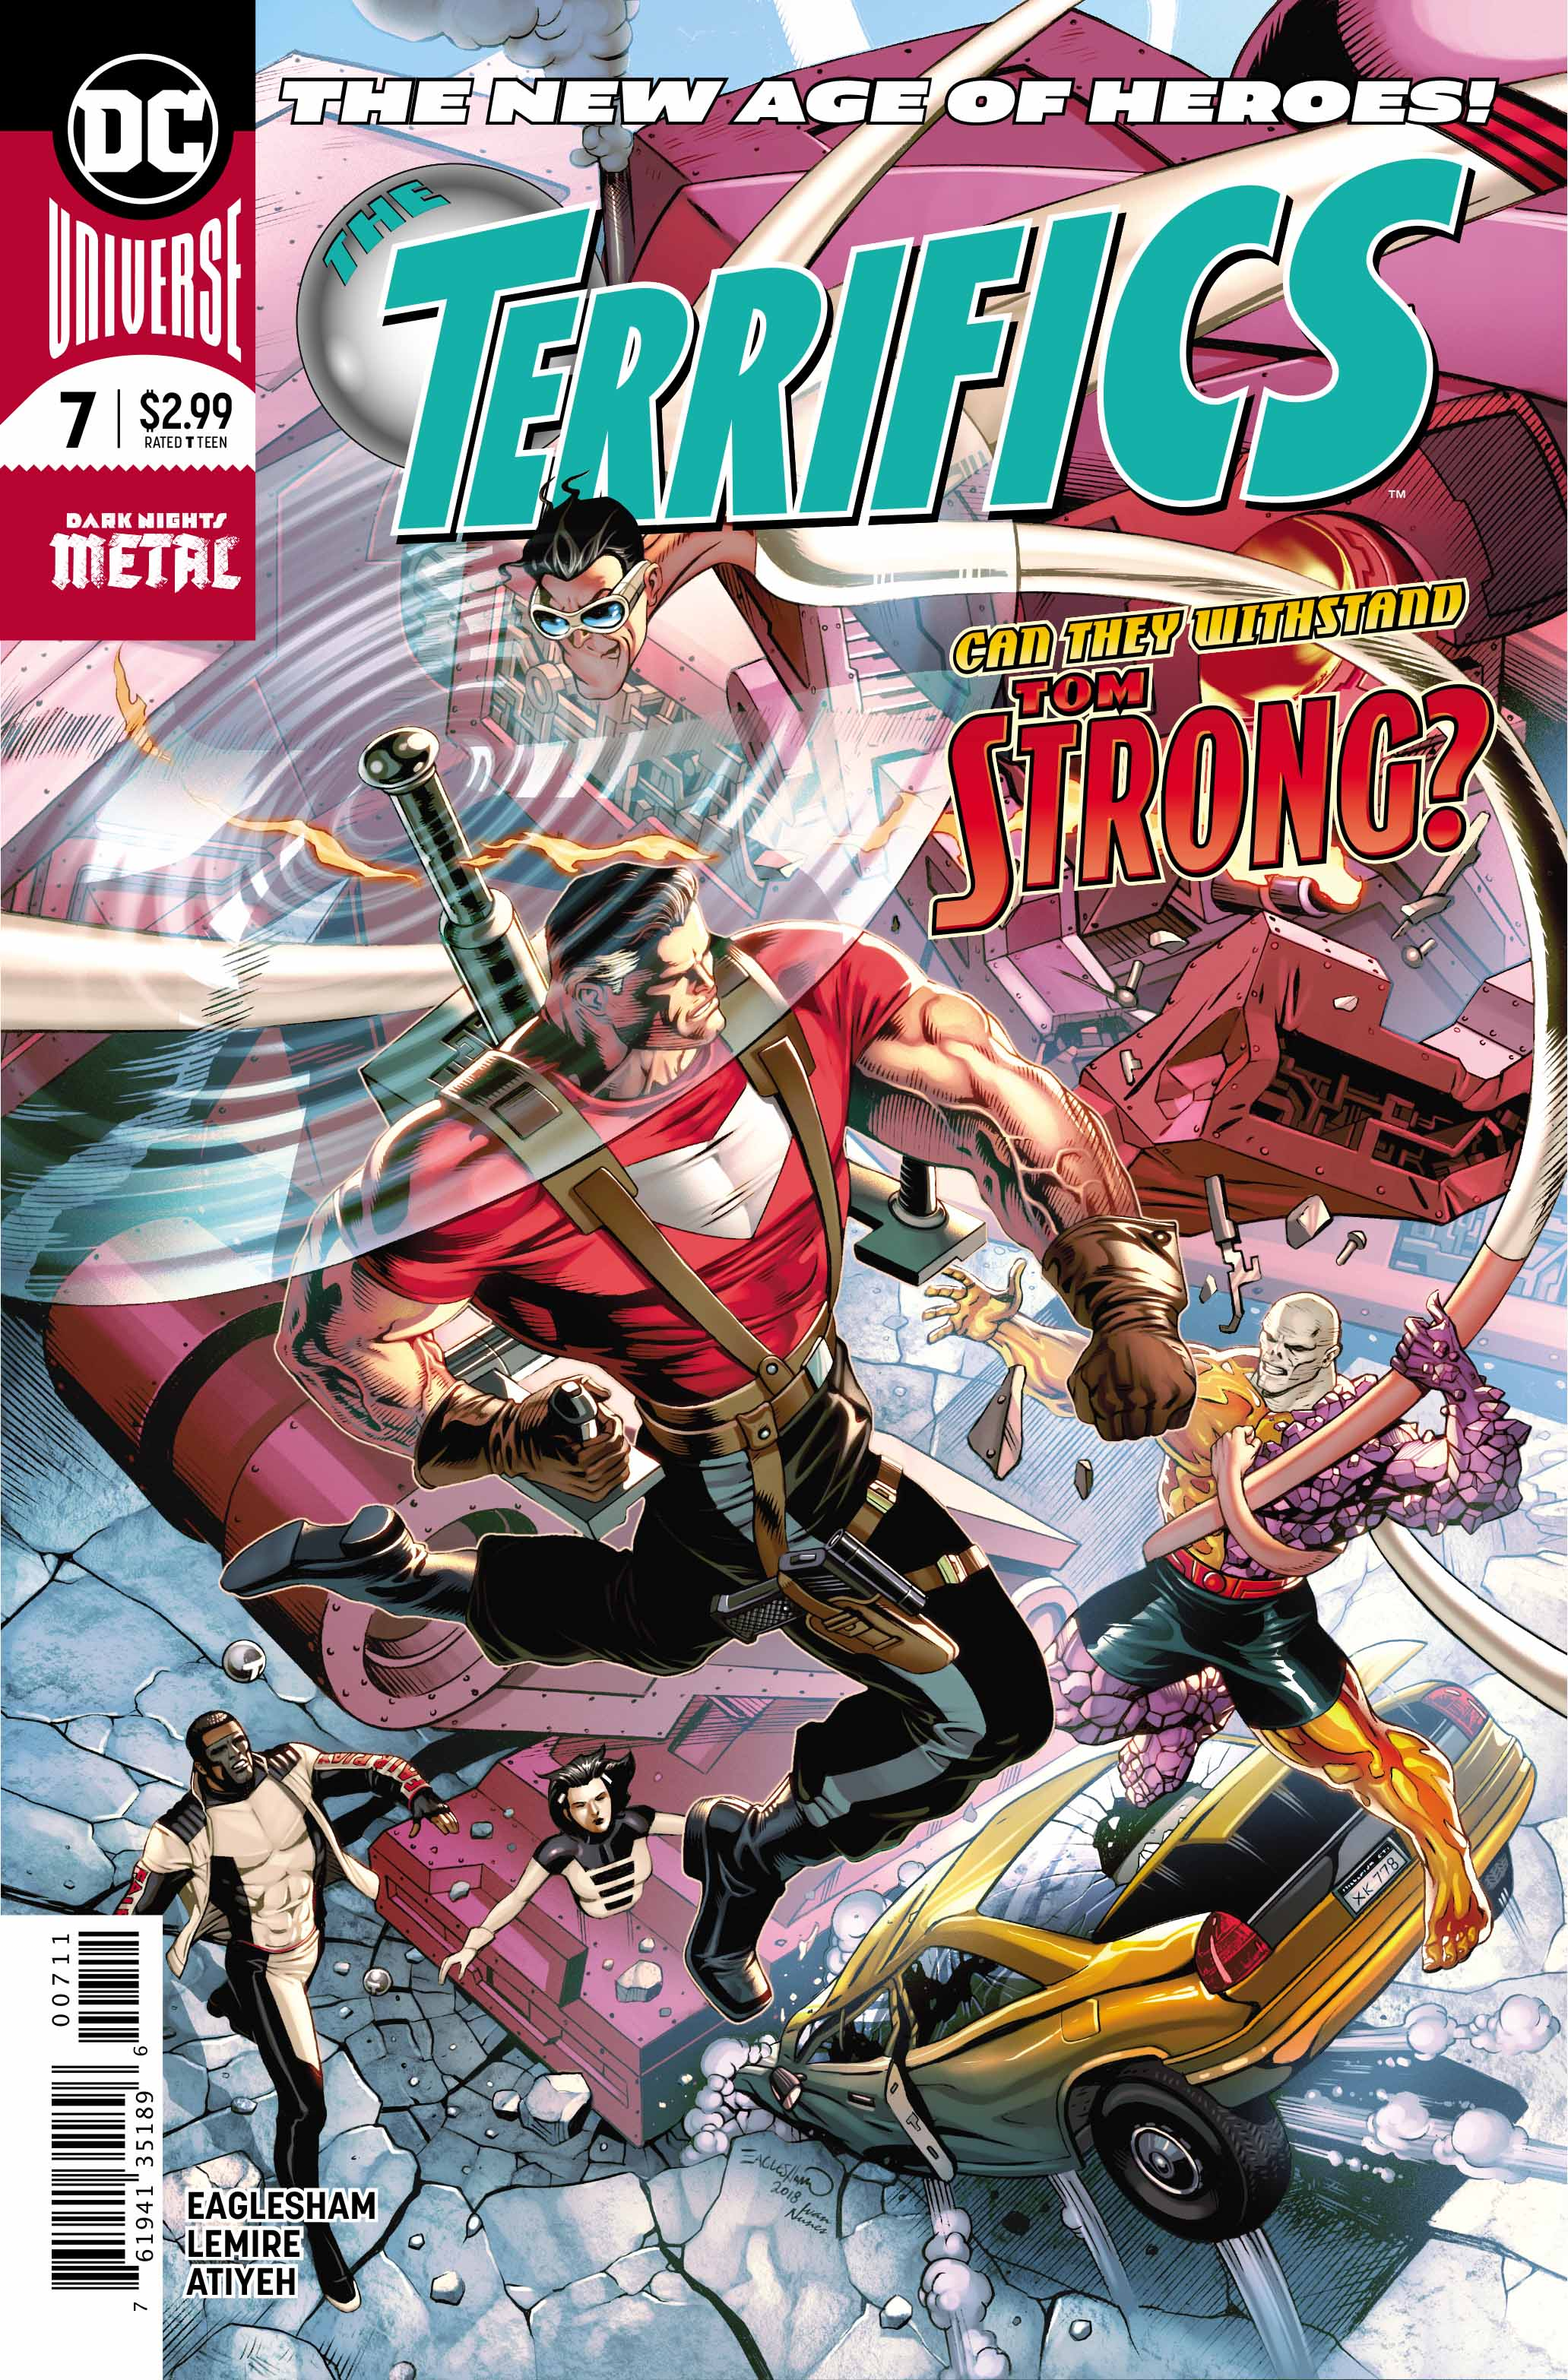 The Terrifics #7 review: Tom Strong is here!